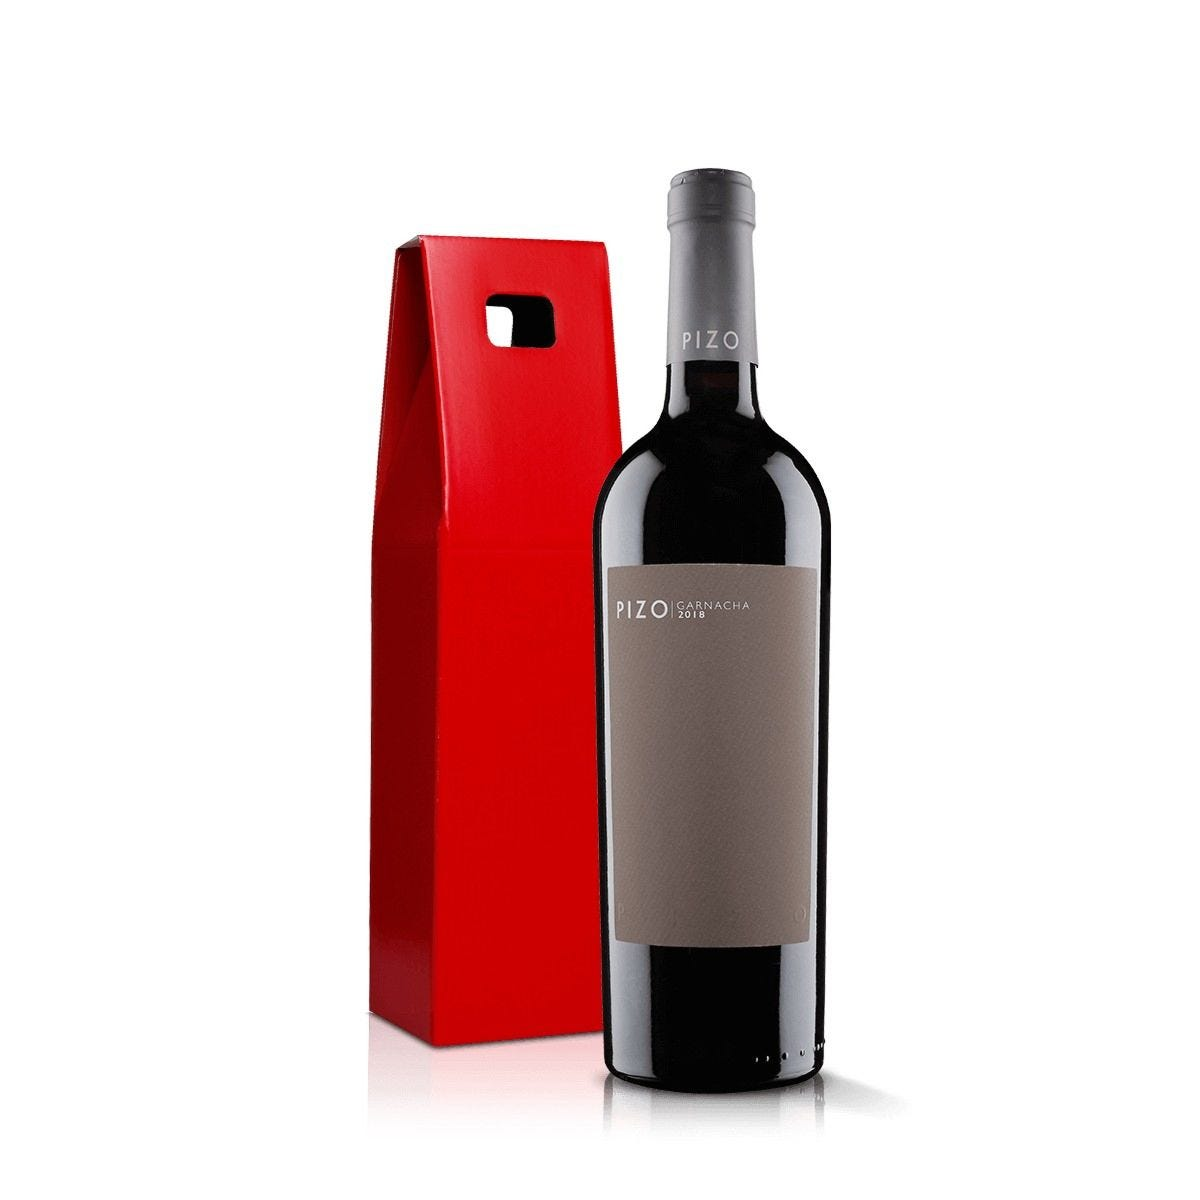 Virgin Wines Pizo Garnacha in Red Gift Box